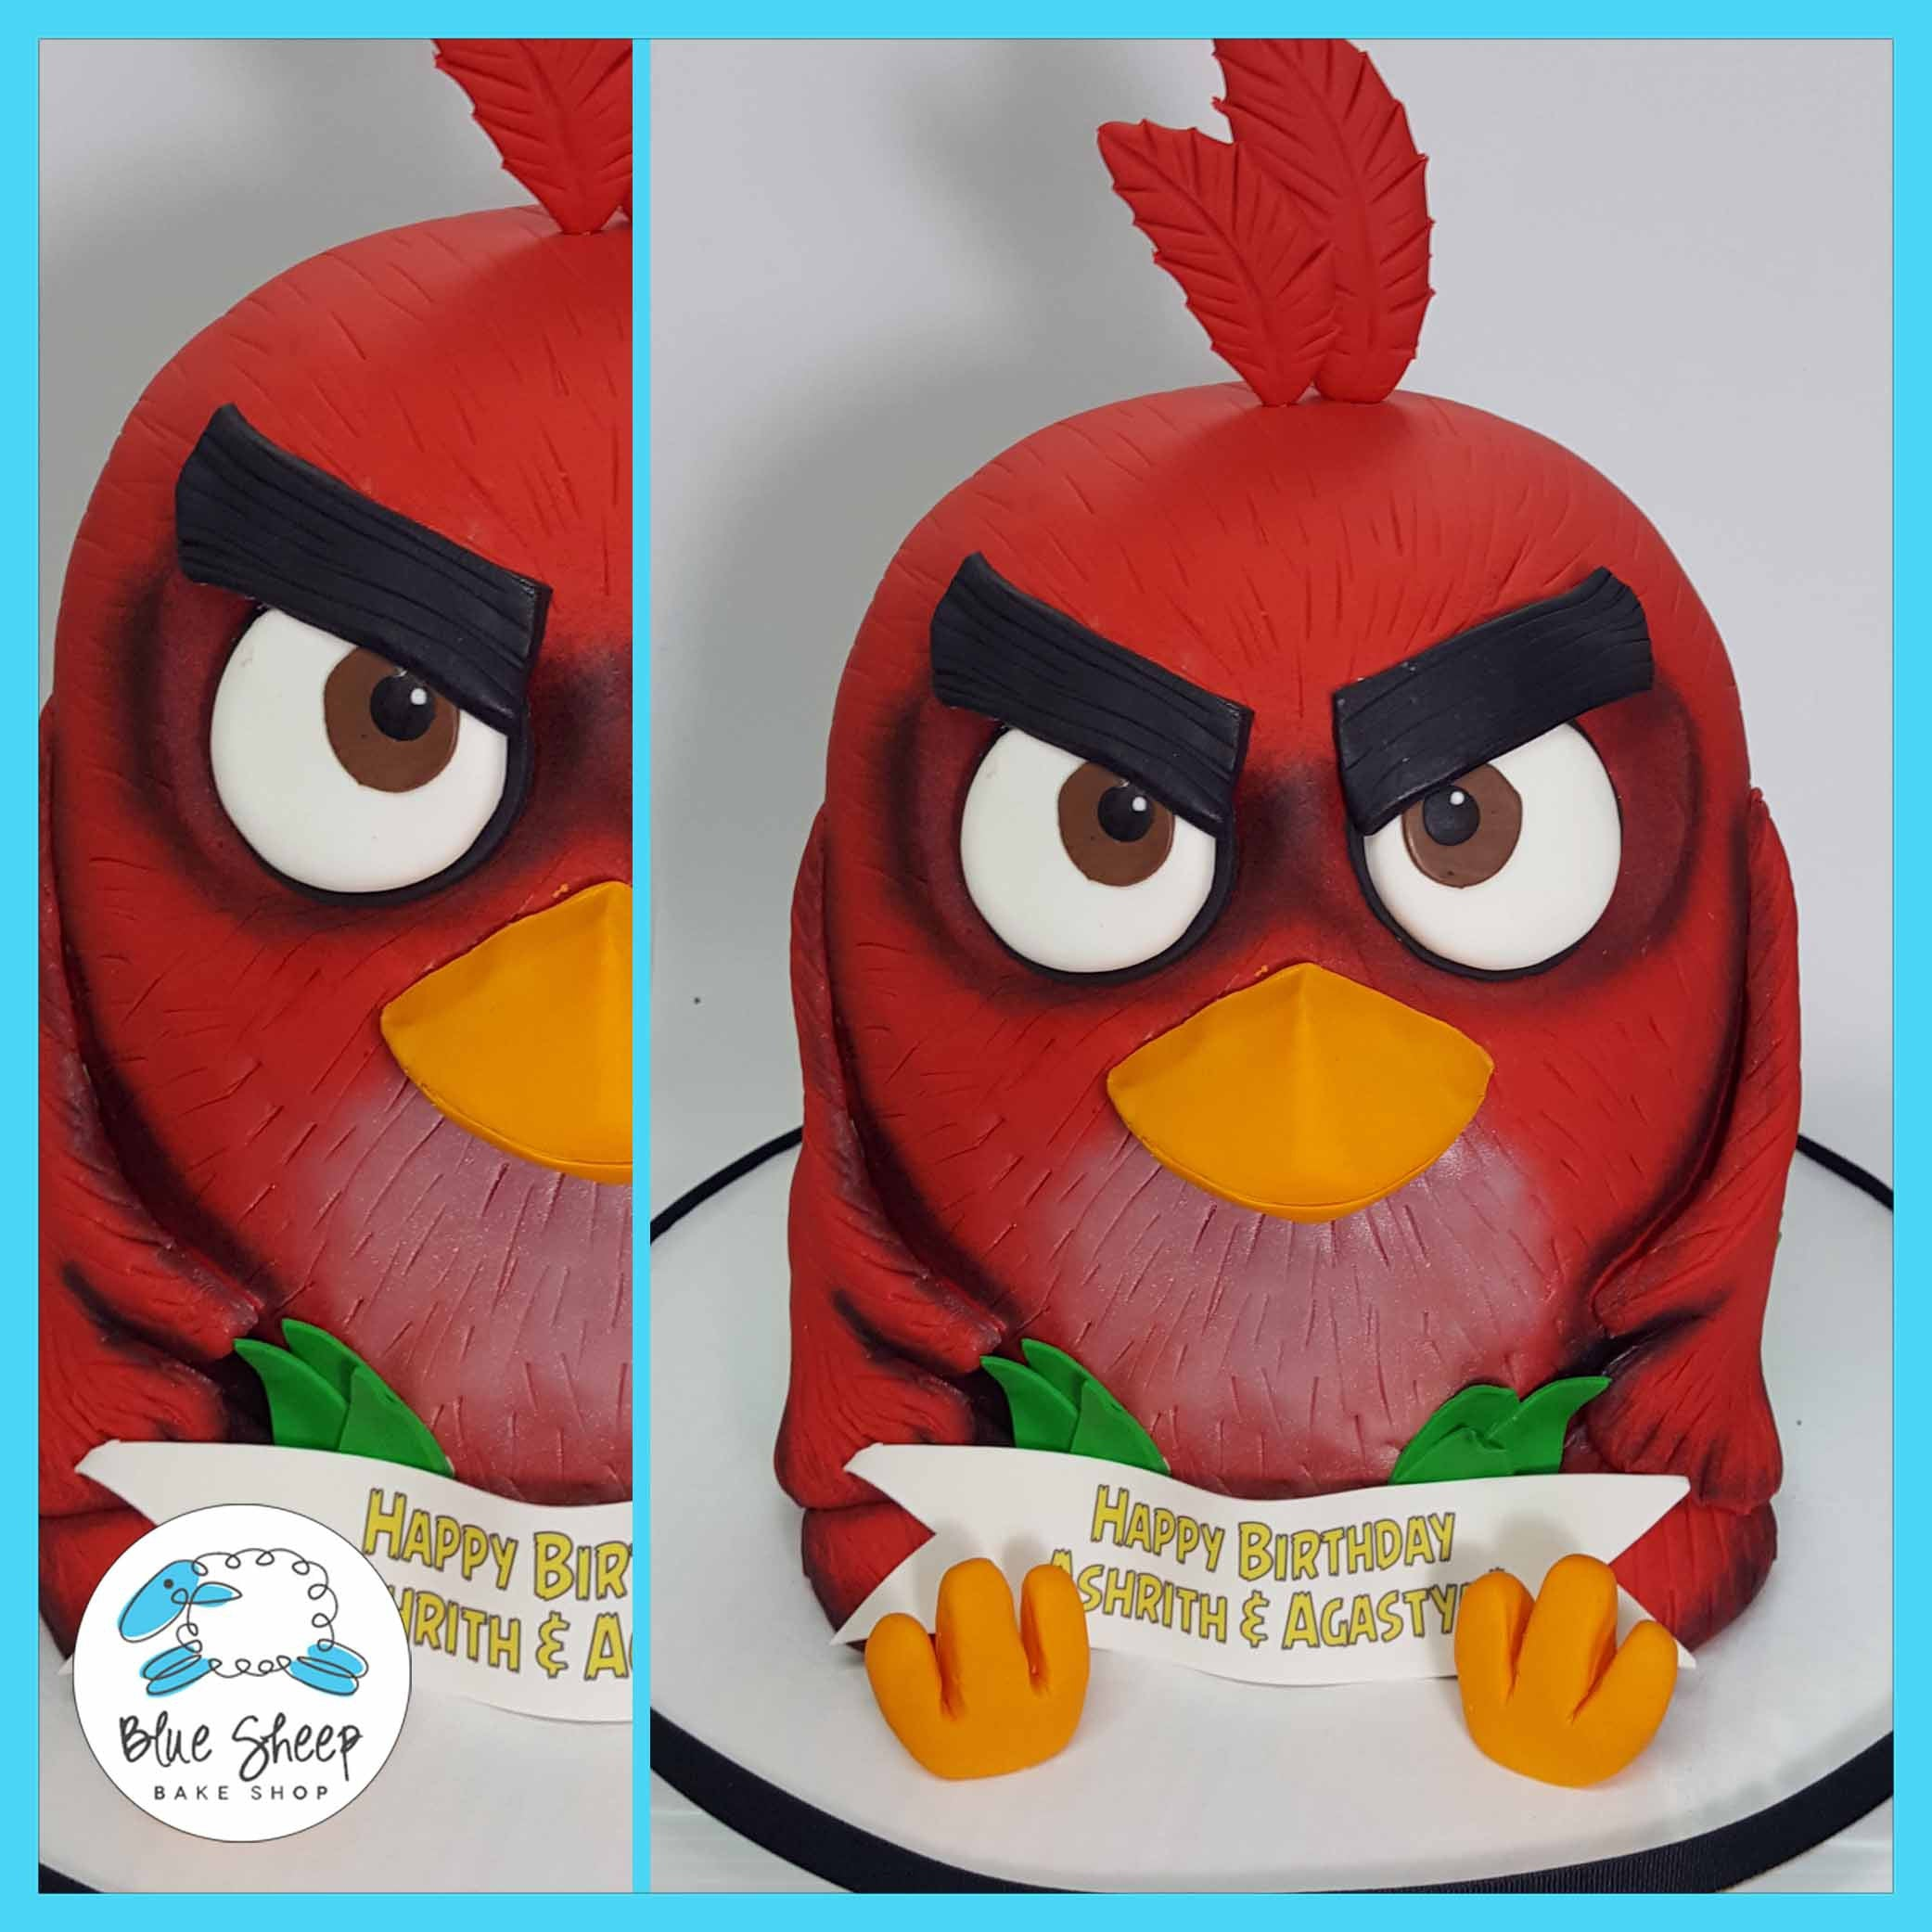 Astounding Red Angry Birds Cake Blue Sheep Bake Shop Funny Birthday Cards Online Fluifree Goldxyz